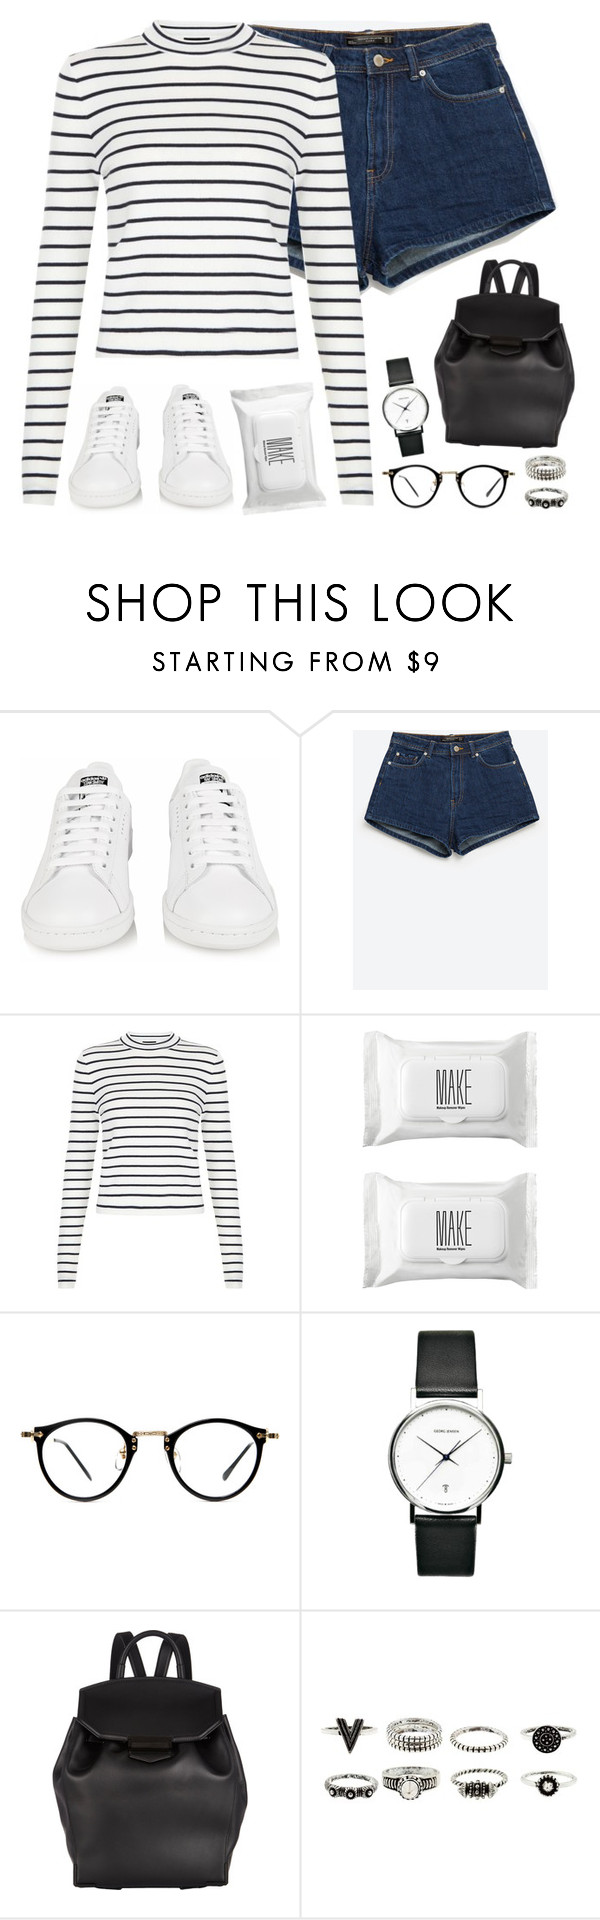 """""""Love For That//Mura Masa"""" by thelonelyheartsclub ❤ liked on Polyvore featuring adidas, Zara, Make, Georg Jensen, Alexander Wang, women's clothing, women, female, woman and misses"""